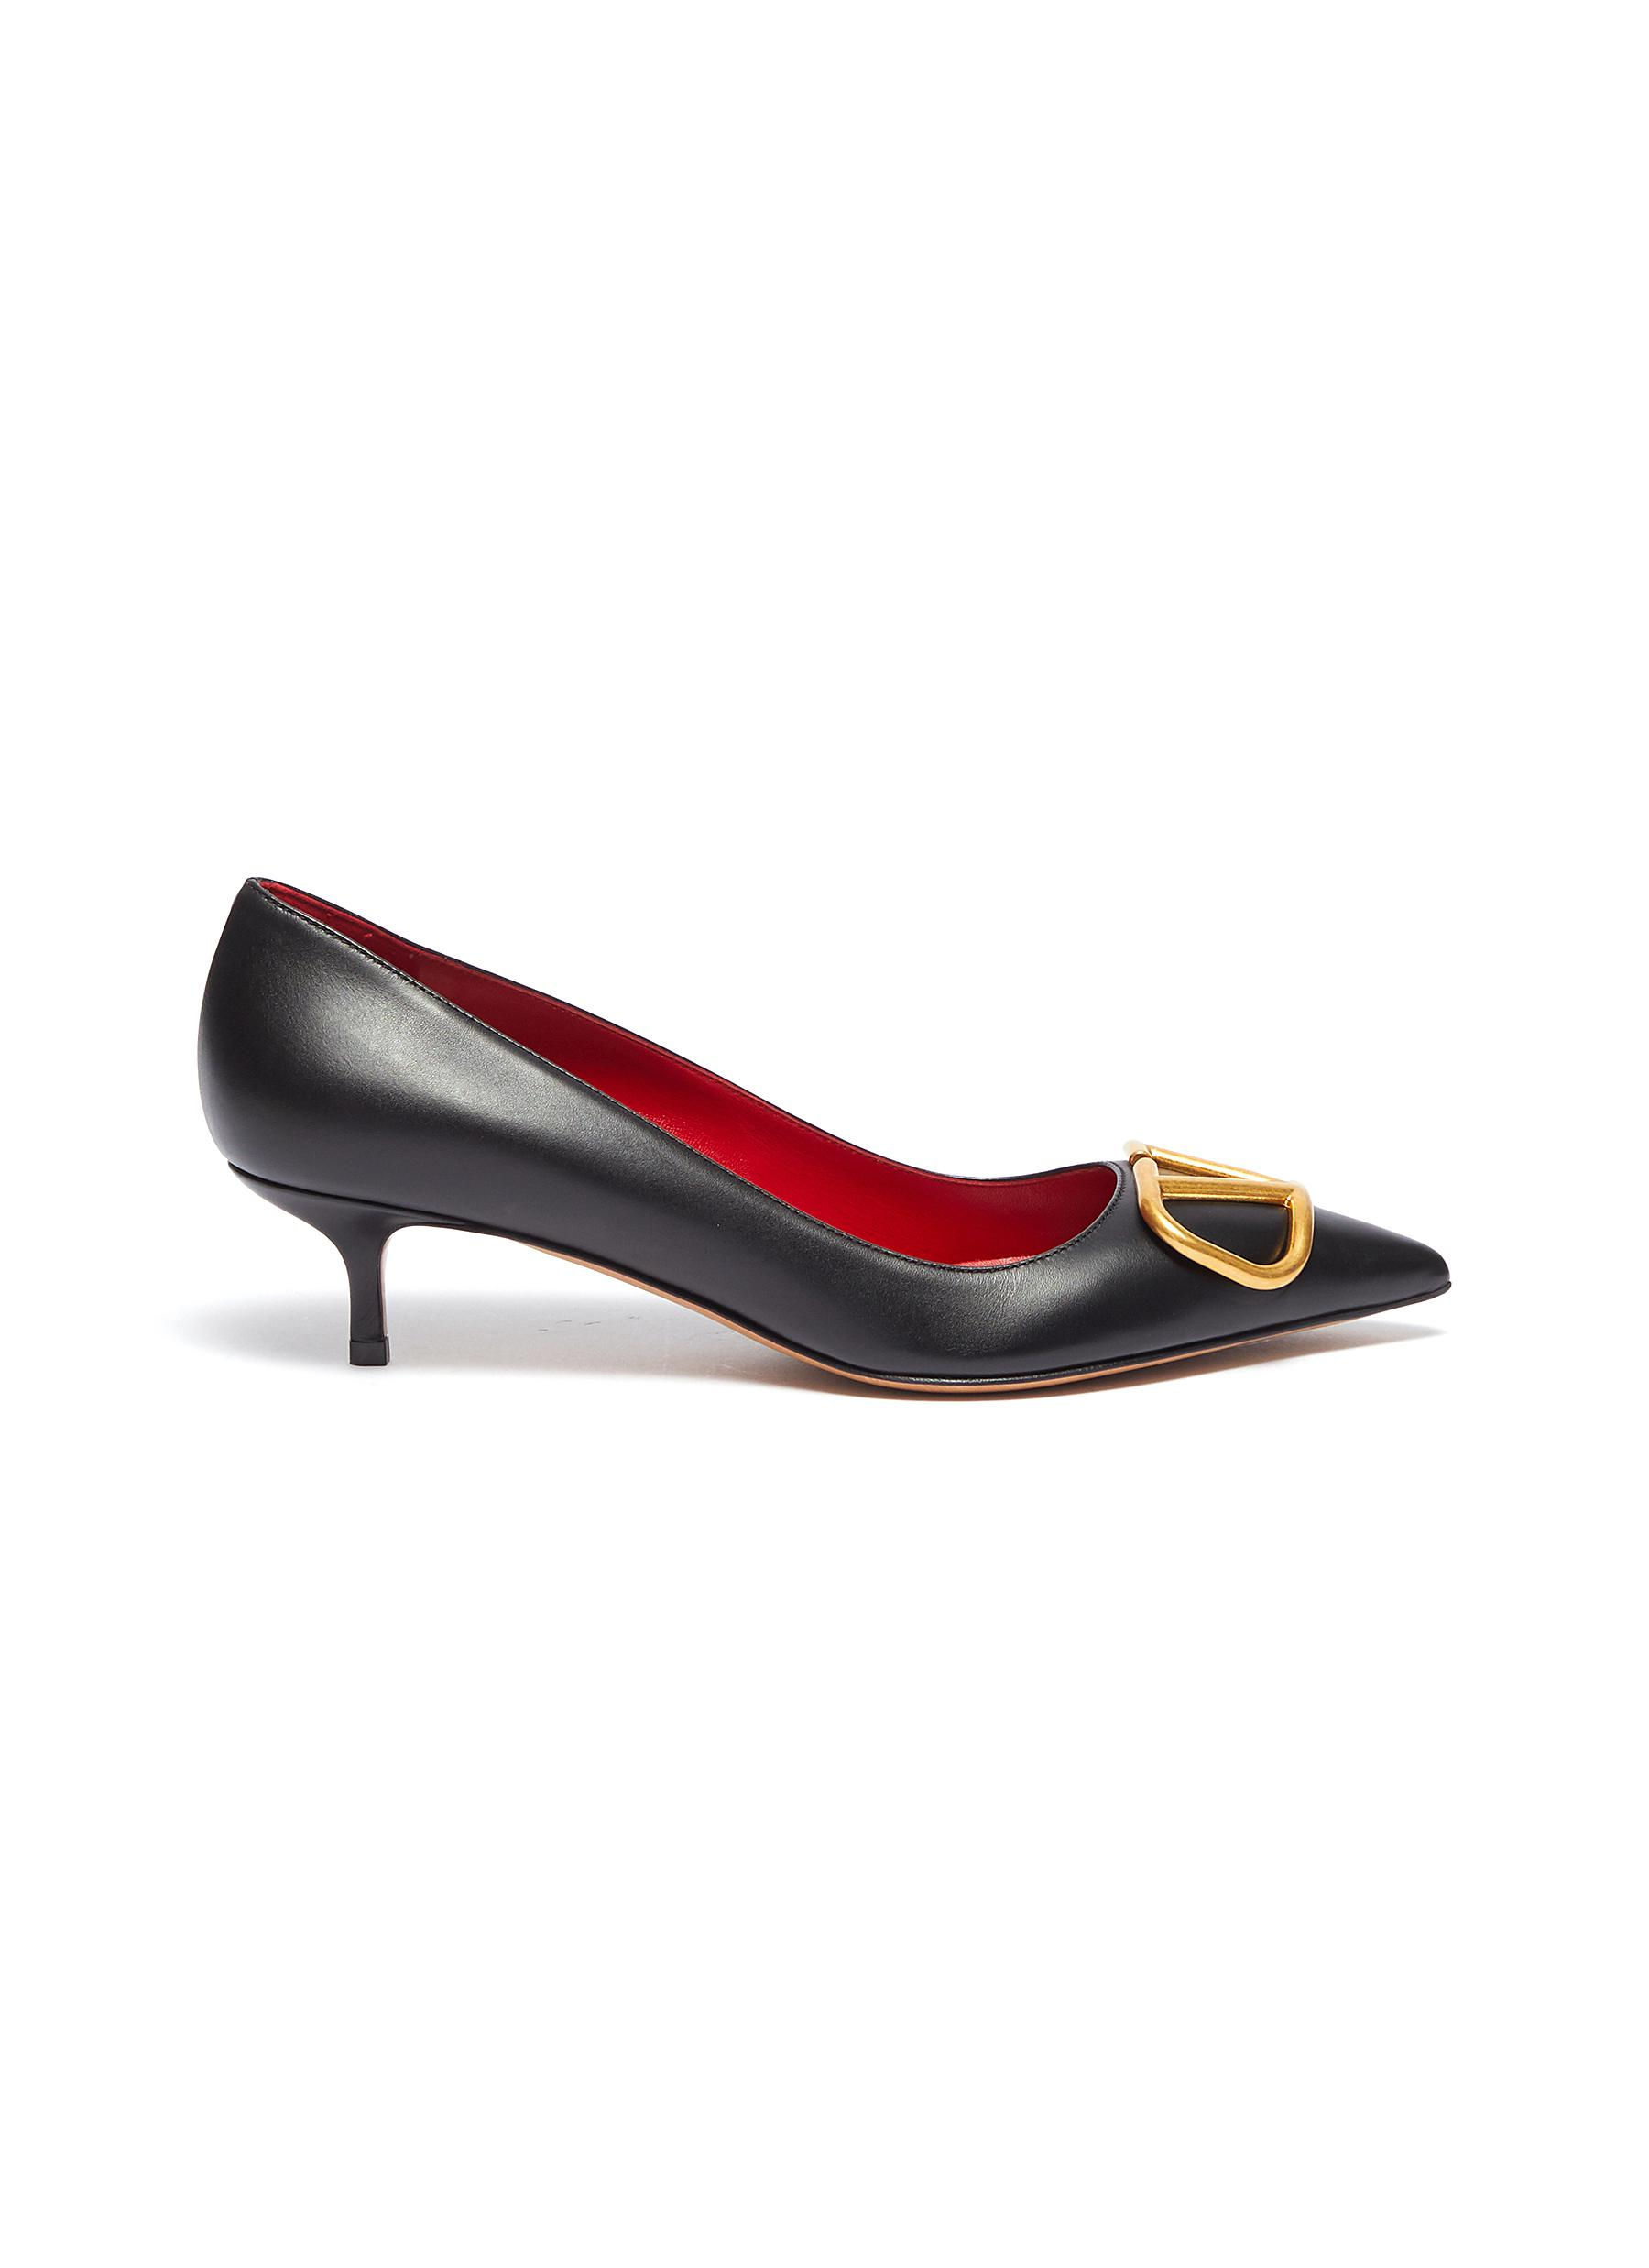 VLOGO leather pumps by Valentino